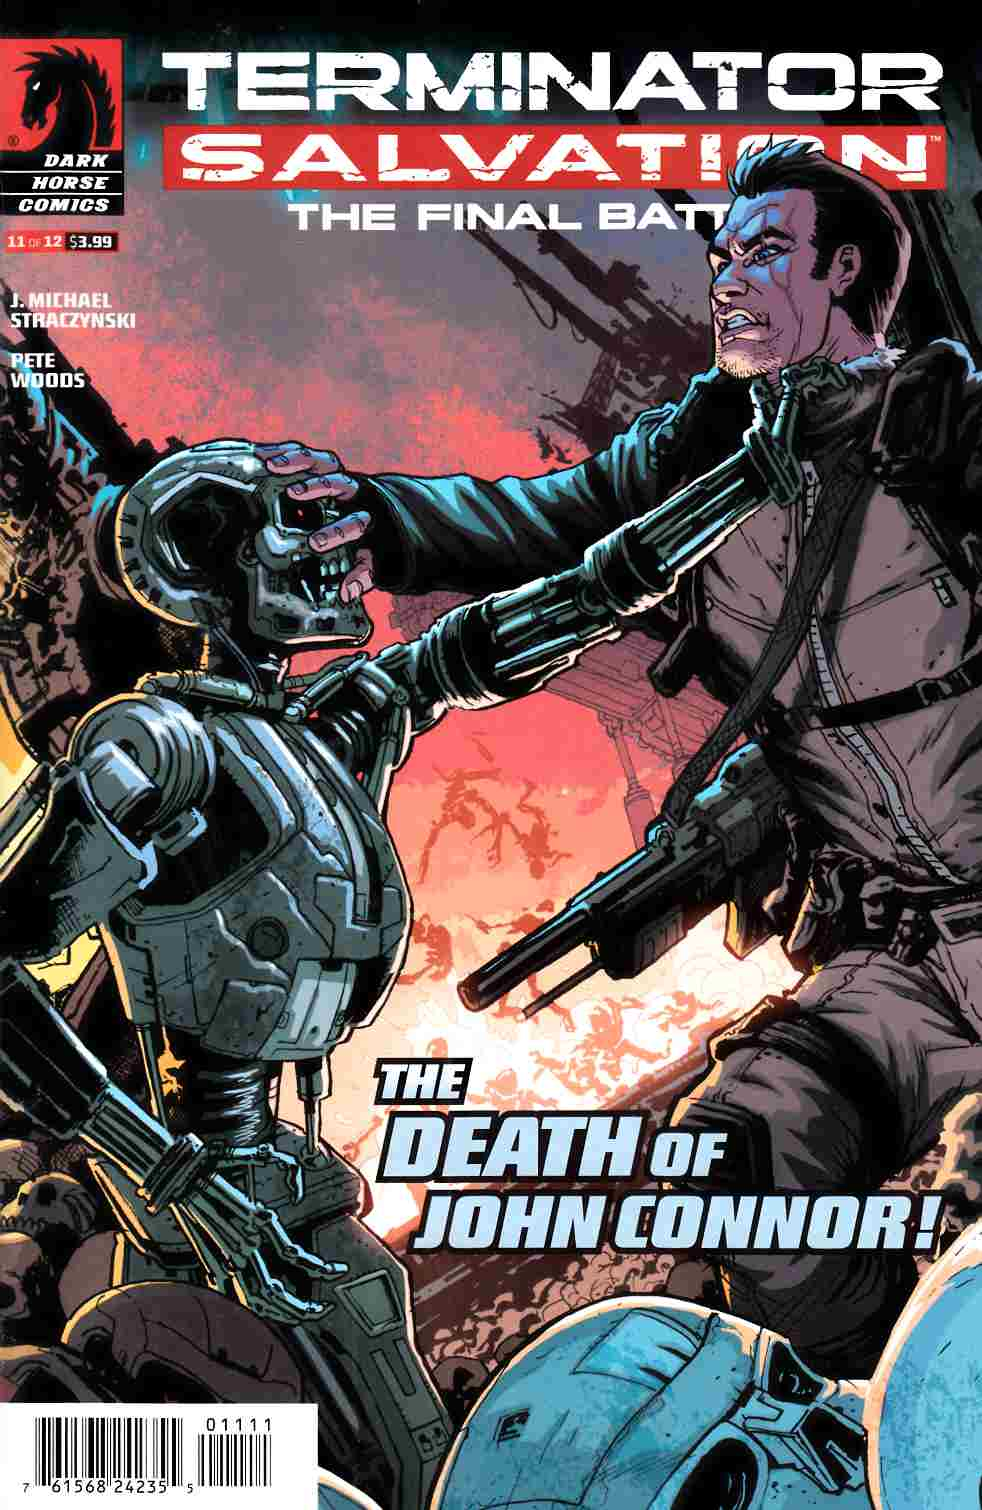 Terminator Salvation Final Battle #11 [Comic] THUMBNAIL